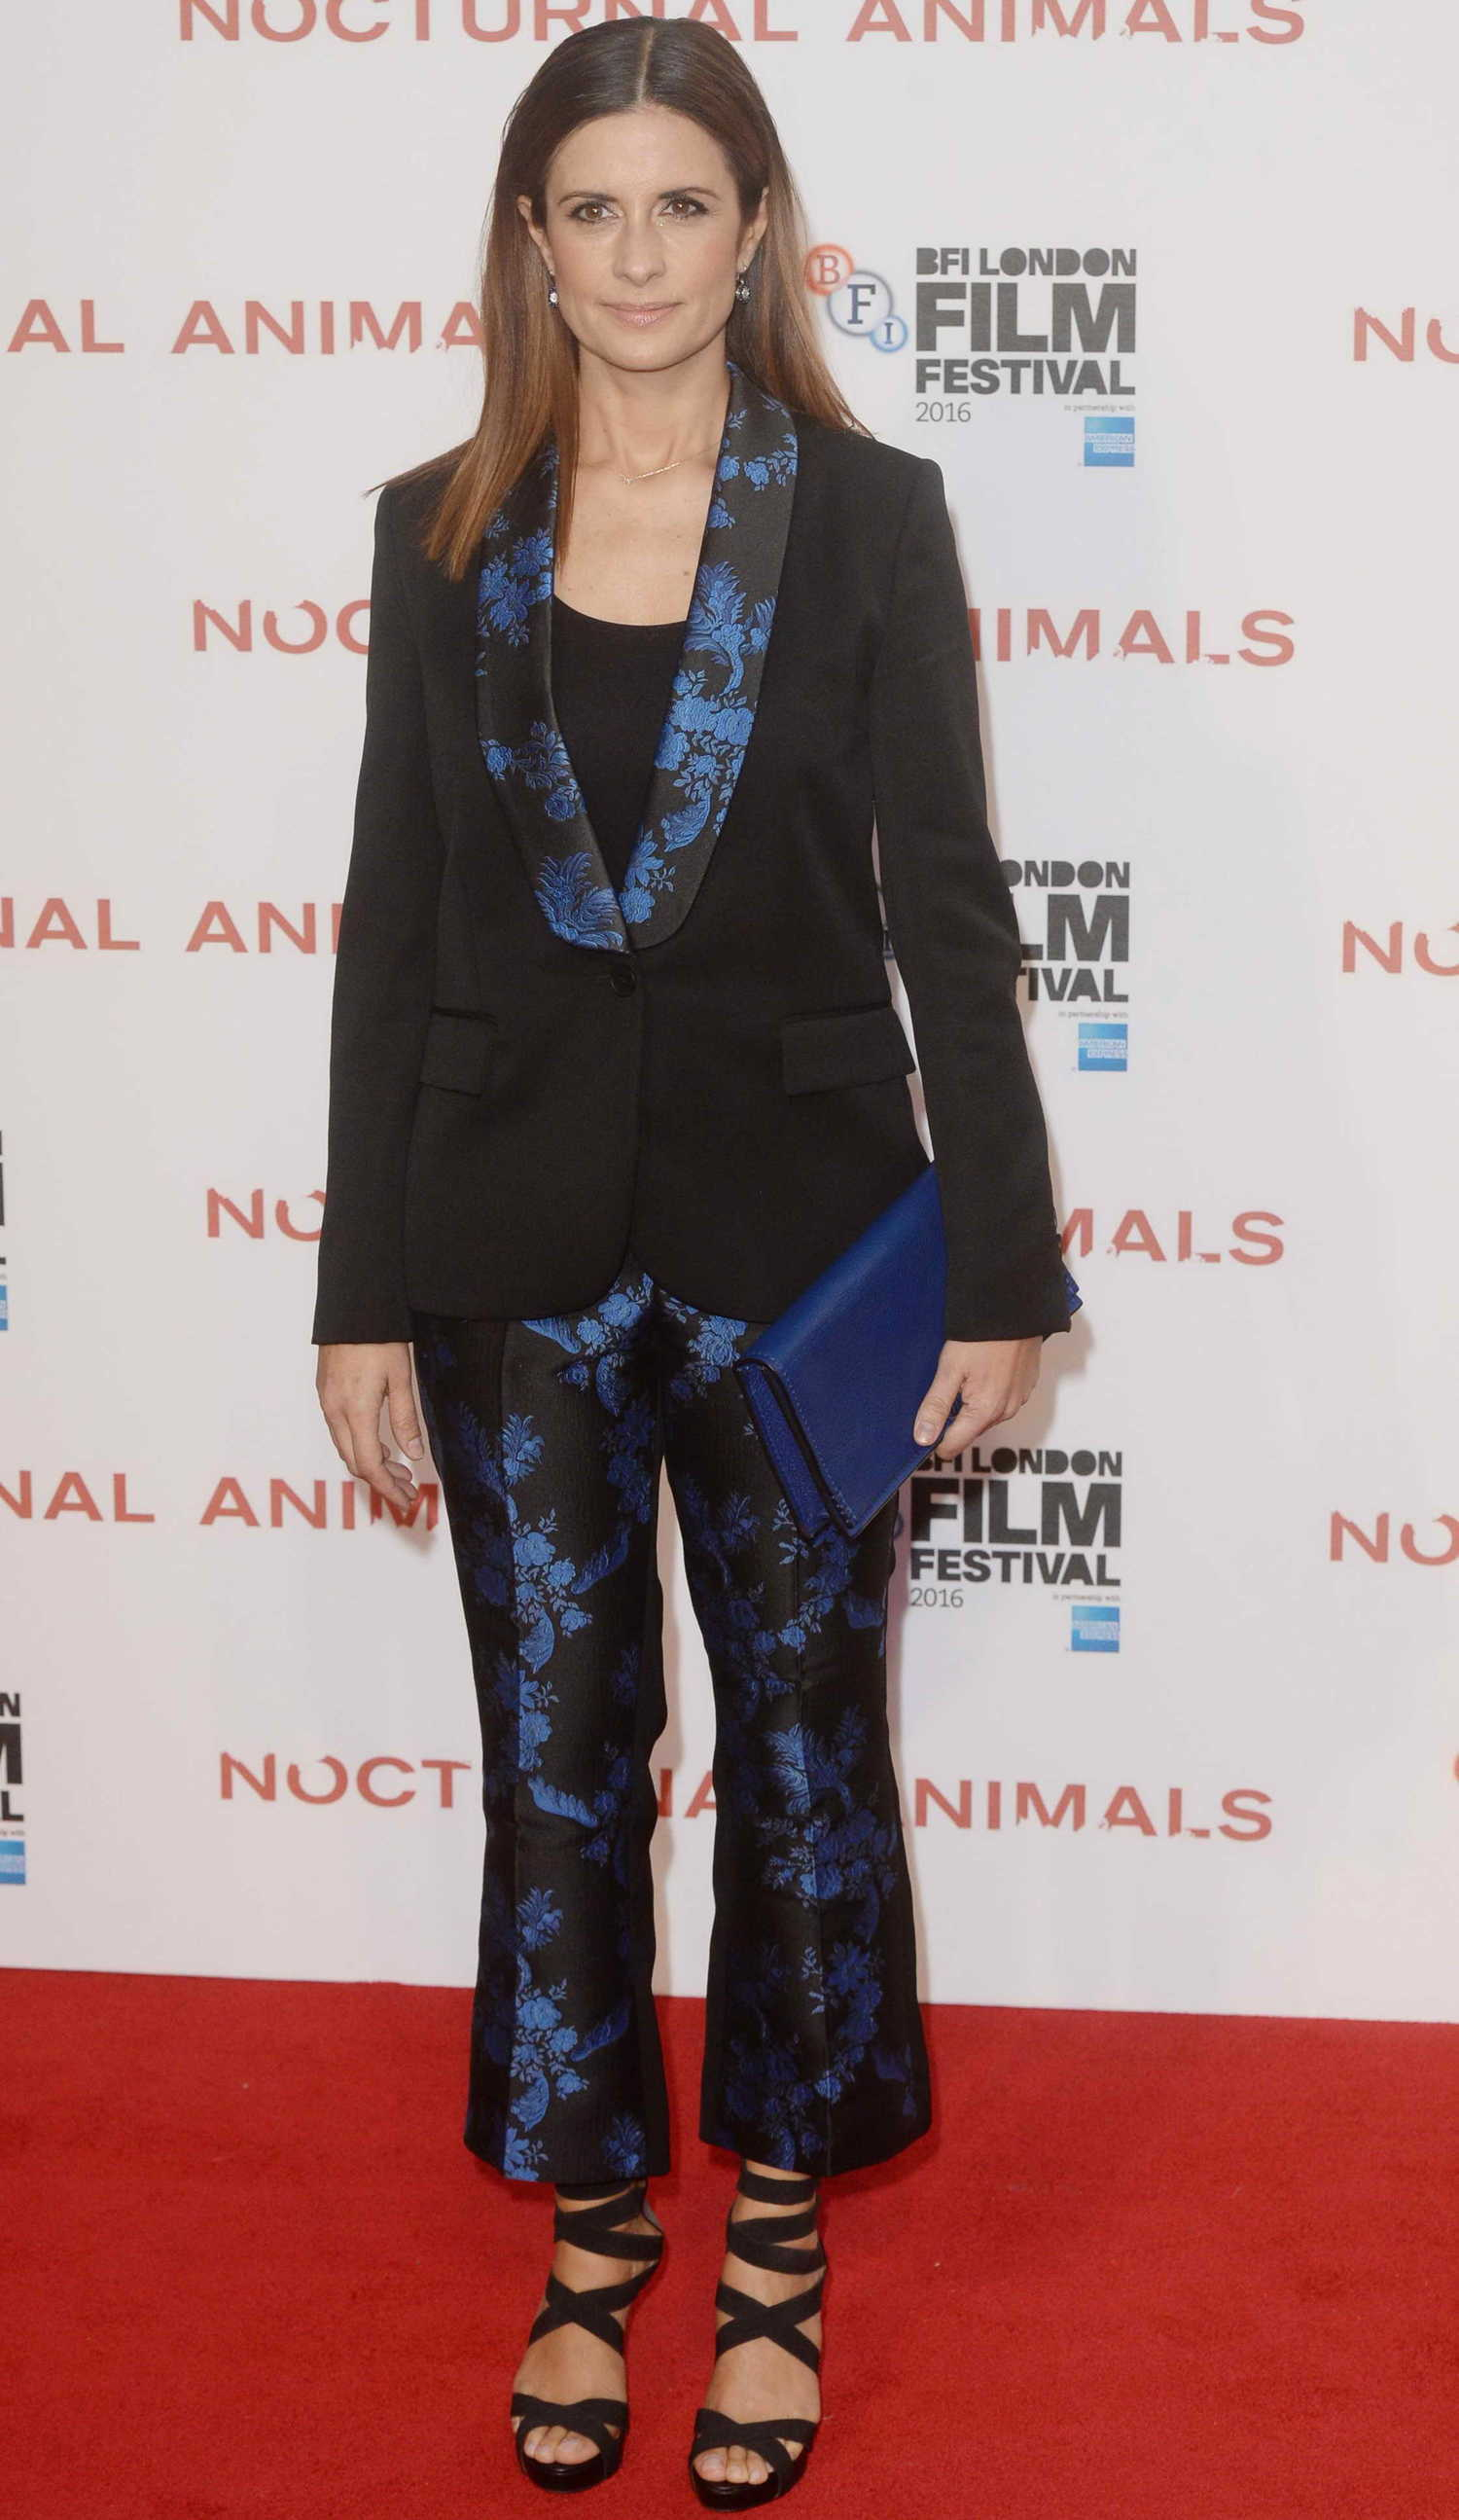 Livia Giuggioli at the Nocturnal Animals Premiere During ... Marion Cotillard